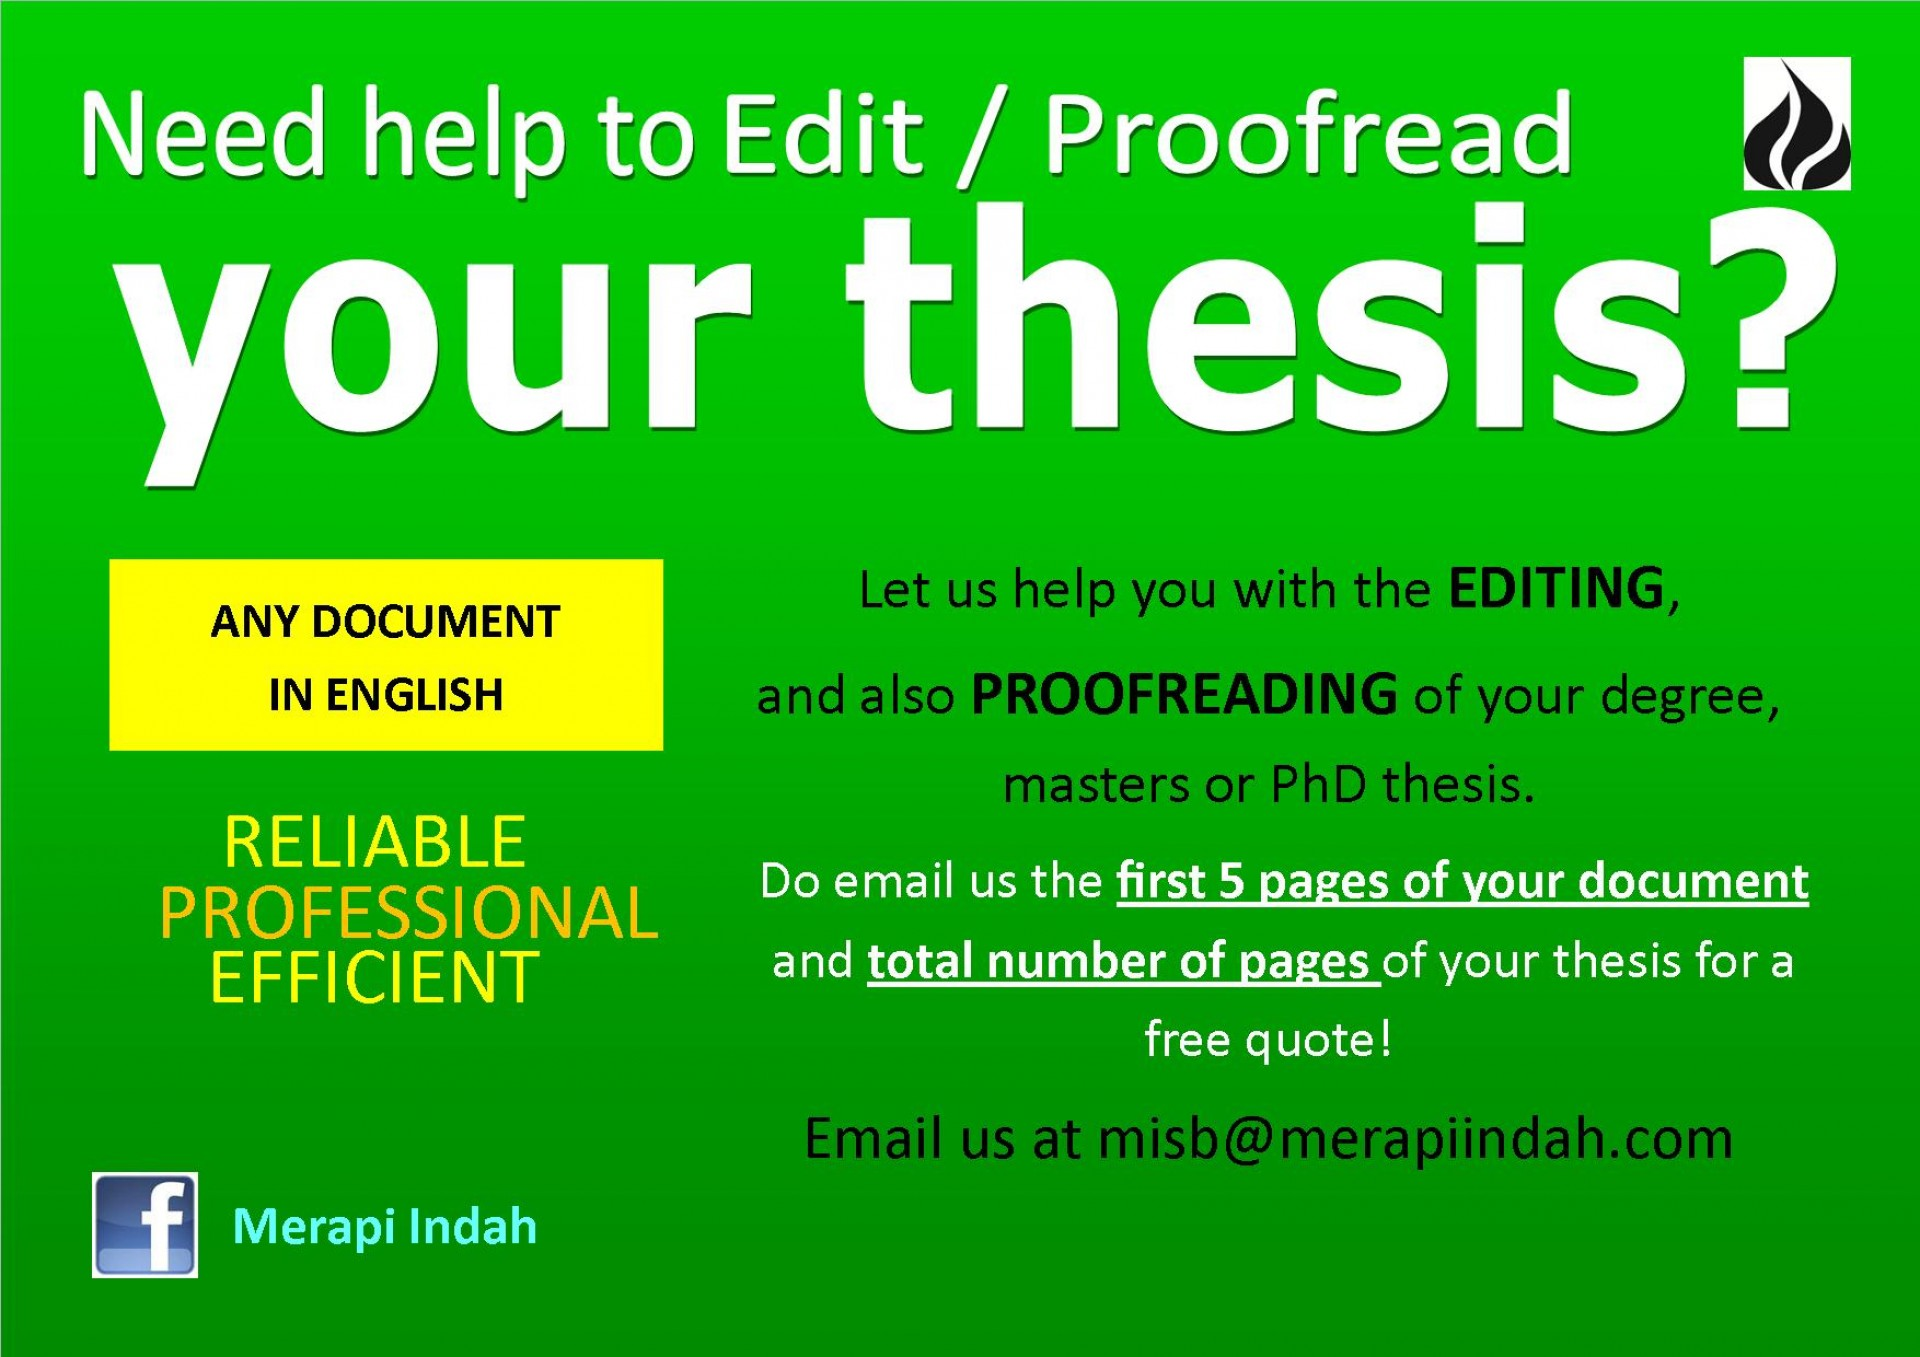 002 Essay Editing Service Misb Proofreading Flyer Thesis Impressive Free Writing Reviews Reddit Australia 1920